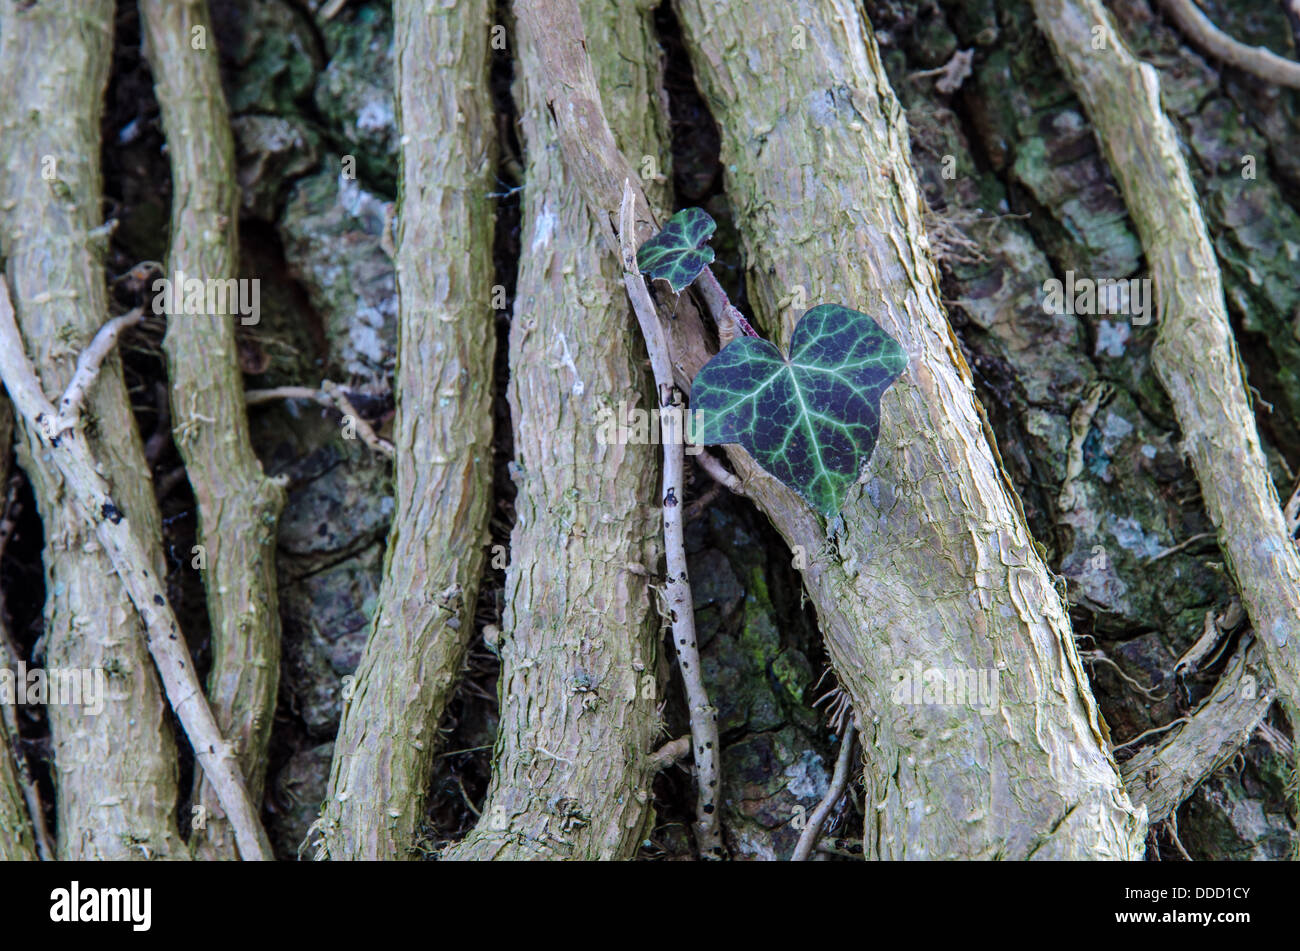 Common Ivy, closeup of a twisted plant on a big tree trunk. - Stock Image